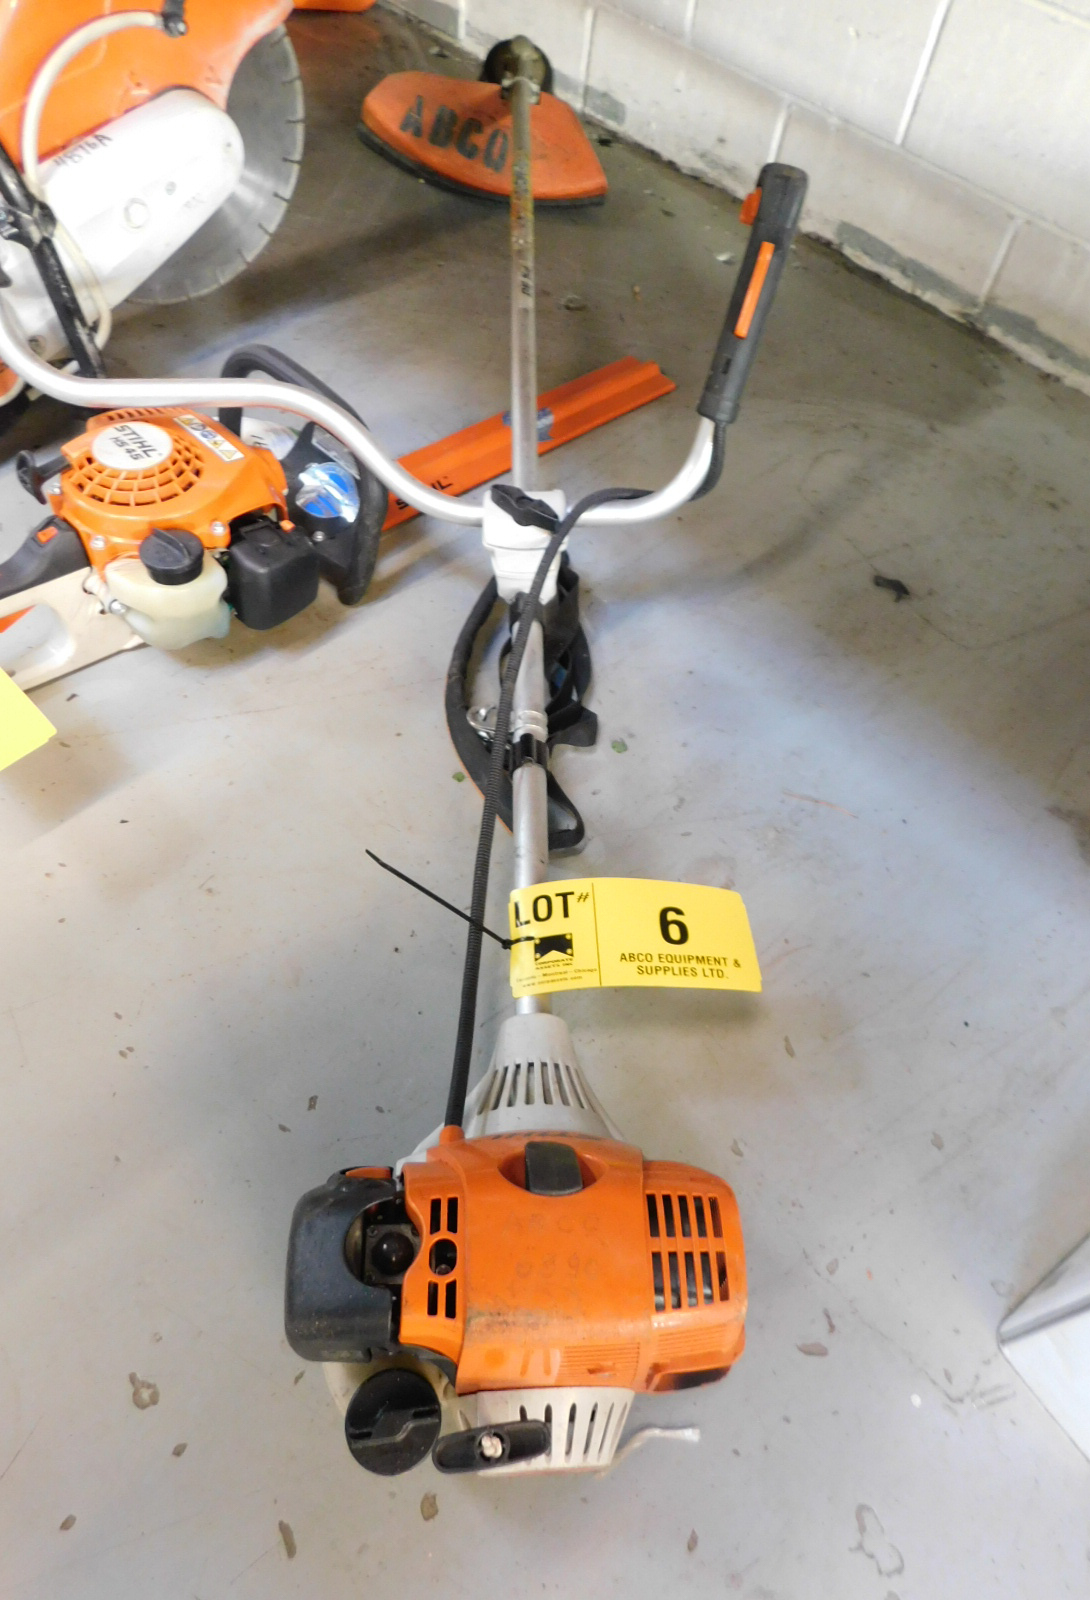 STIHL FS-90 WEED EATER